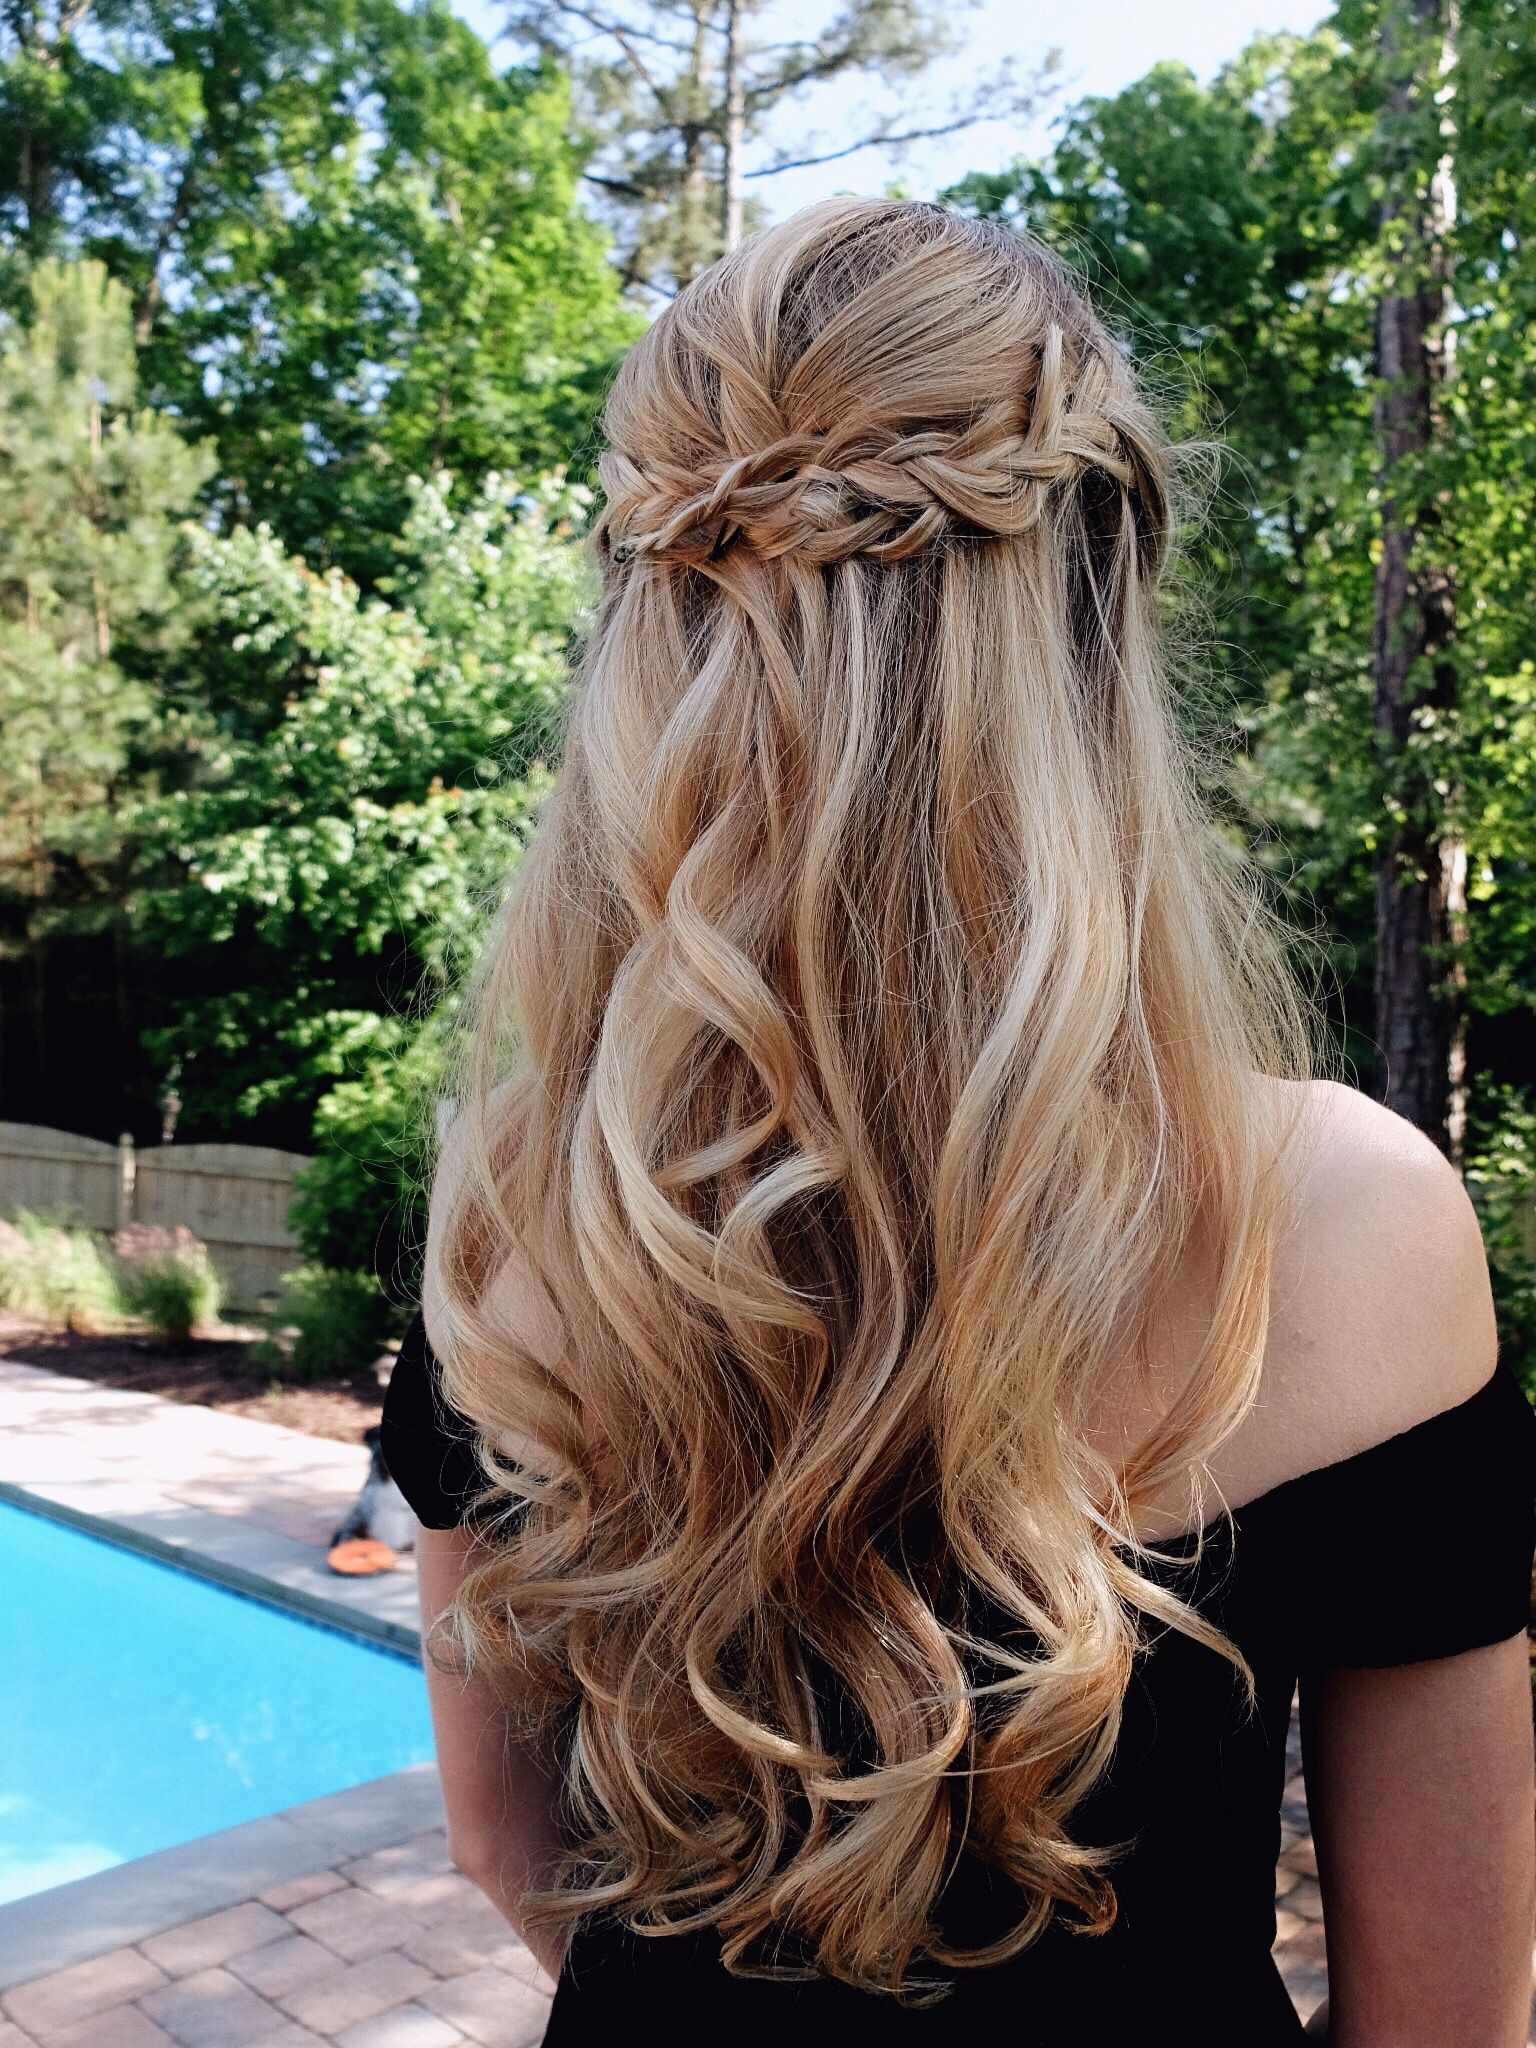 beautiful prom hair #prom #promhair #braid #curls | prom